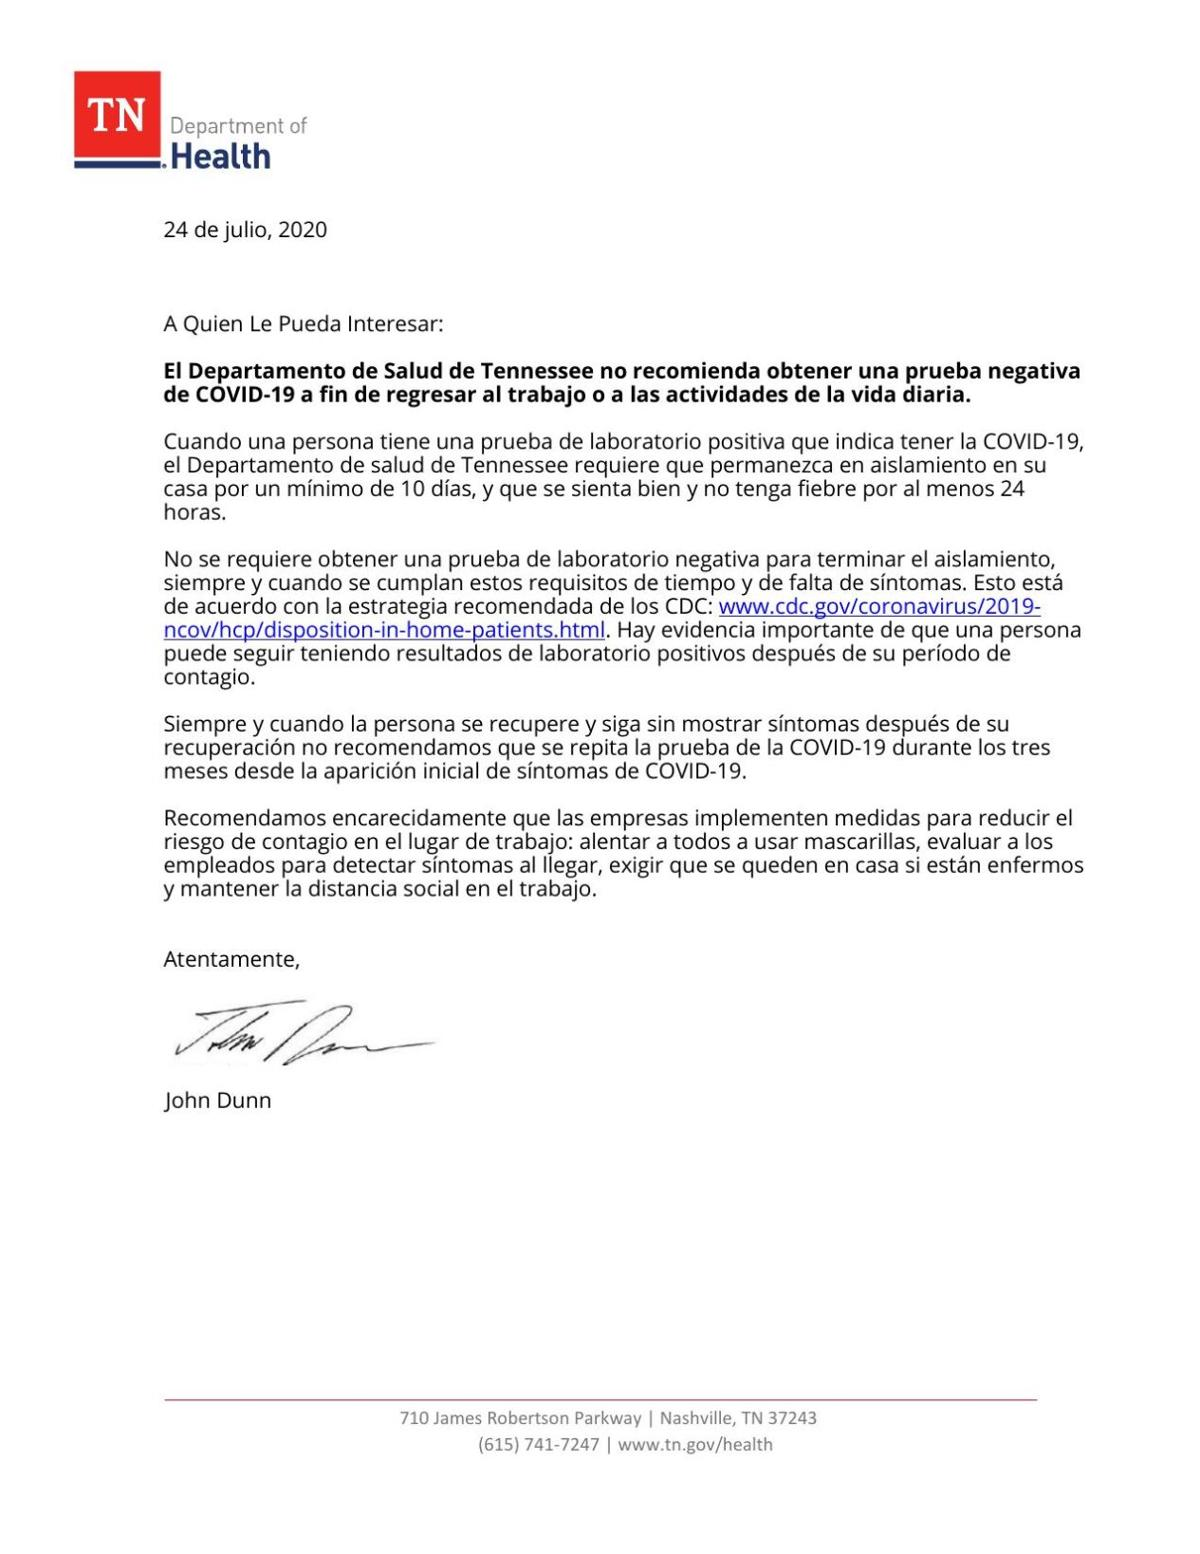 (Spanish) Tennessee Department of Health letter to employer